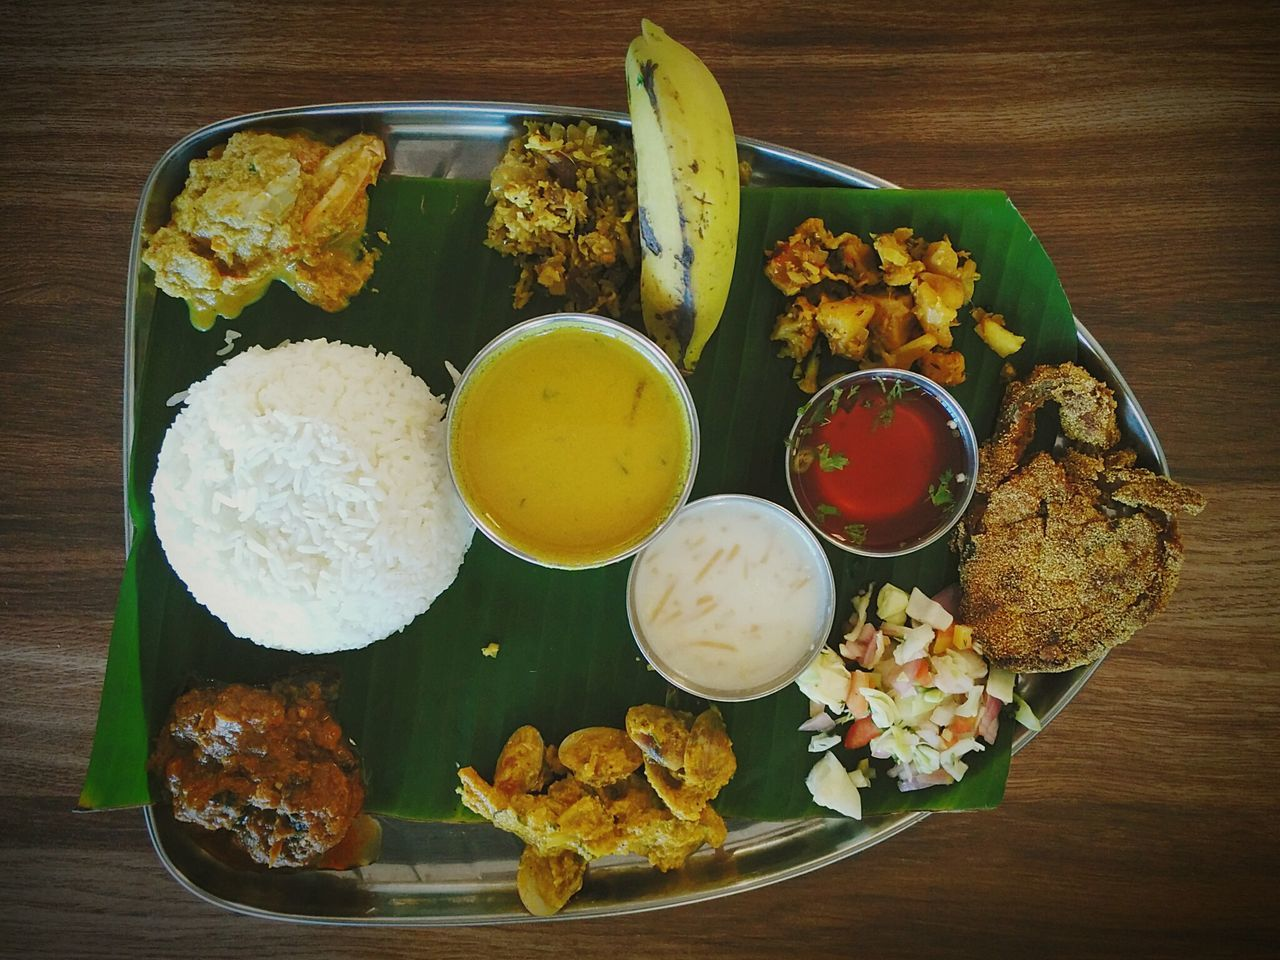 Antique Fish Thali. Fish Seafood Lovers Seafoods Fish Thali Kingfish Goa Goan Rice Plate Lunch Goan Curry Cuisine Food Photography Foodie Foodgasm Banana Leaf Eating Healthy Fish Meal Meal Hooman GoanCuisine Kismur Kismoor Goan Fish Curry Rice Fish Curry Fish Curry And Rice